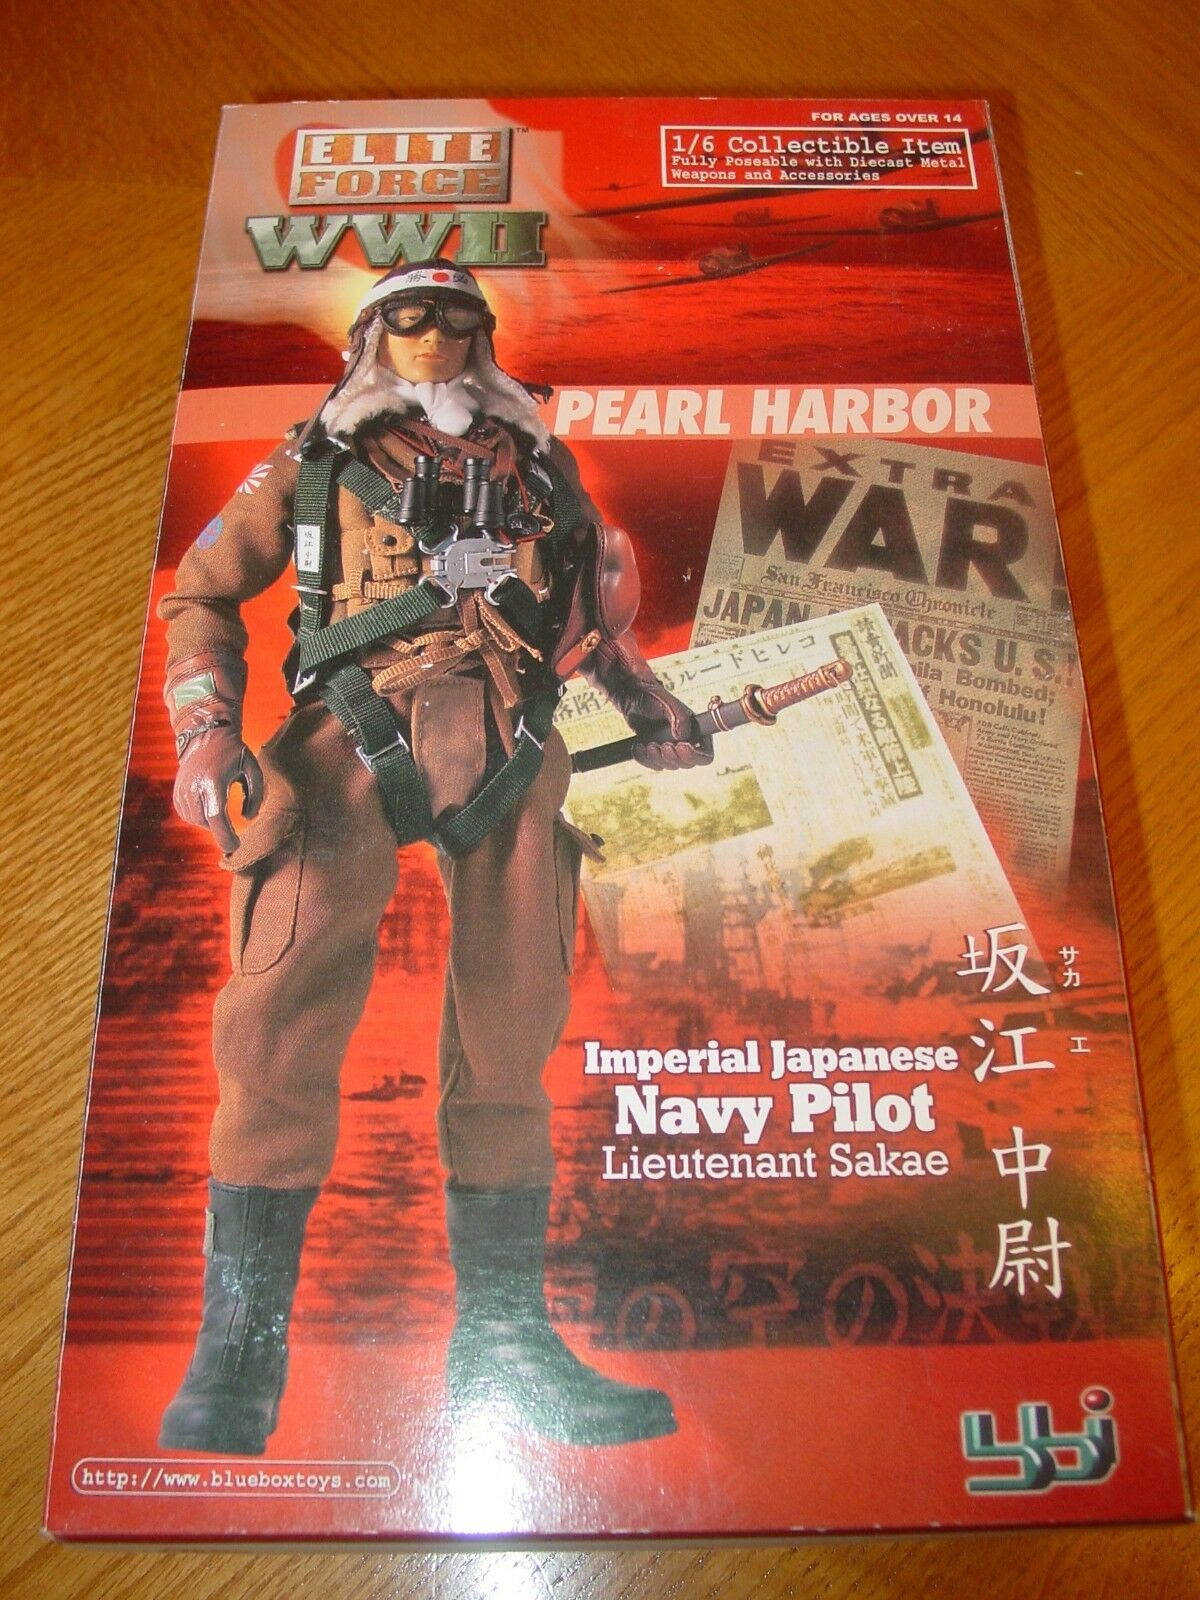 Lt Sakae  1 6 Scale Imperial Japanese Navy Pilot  comprare a buon mercato